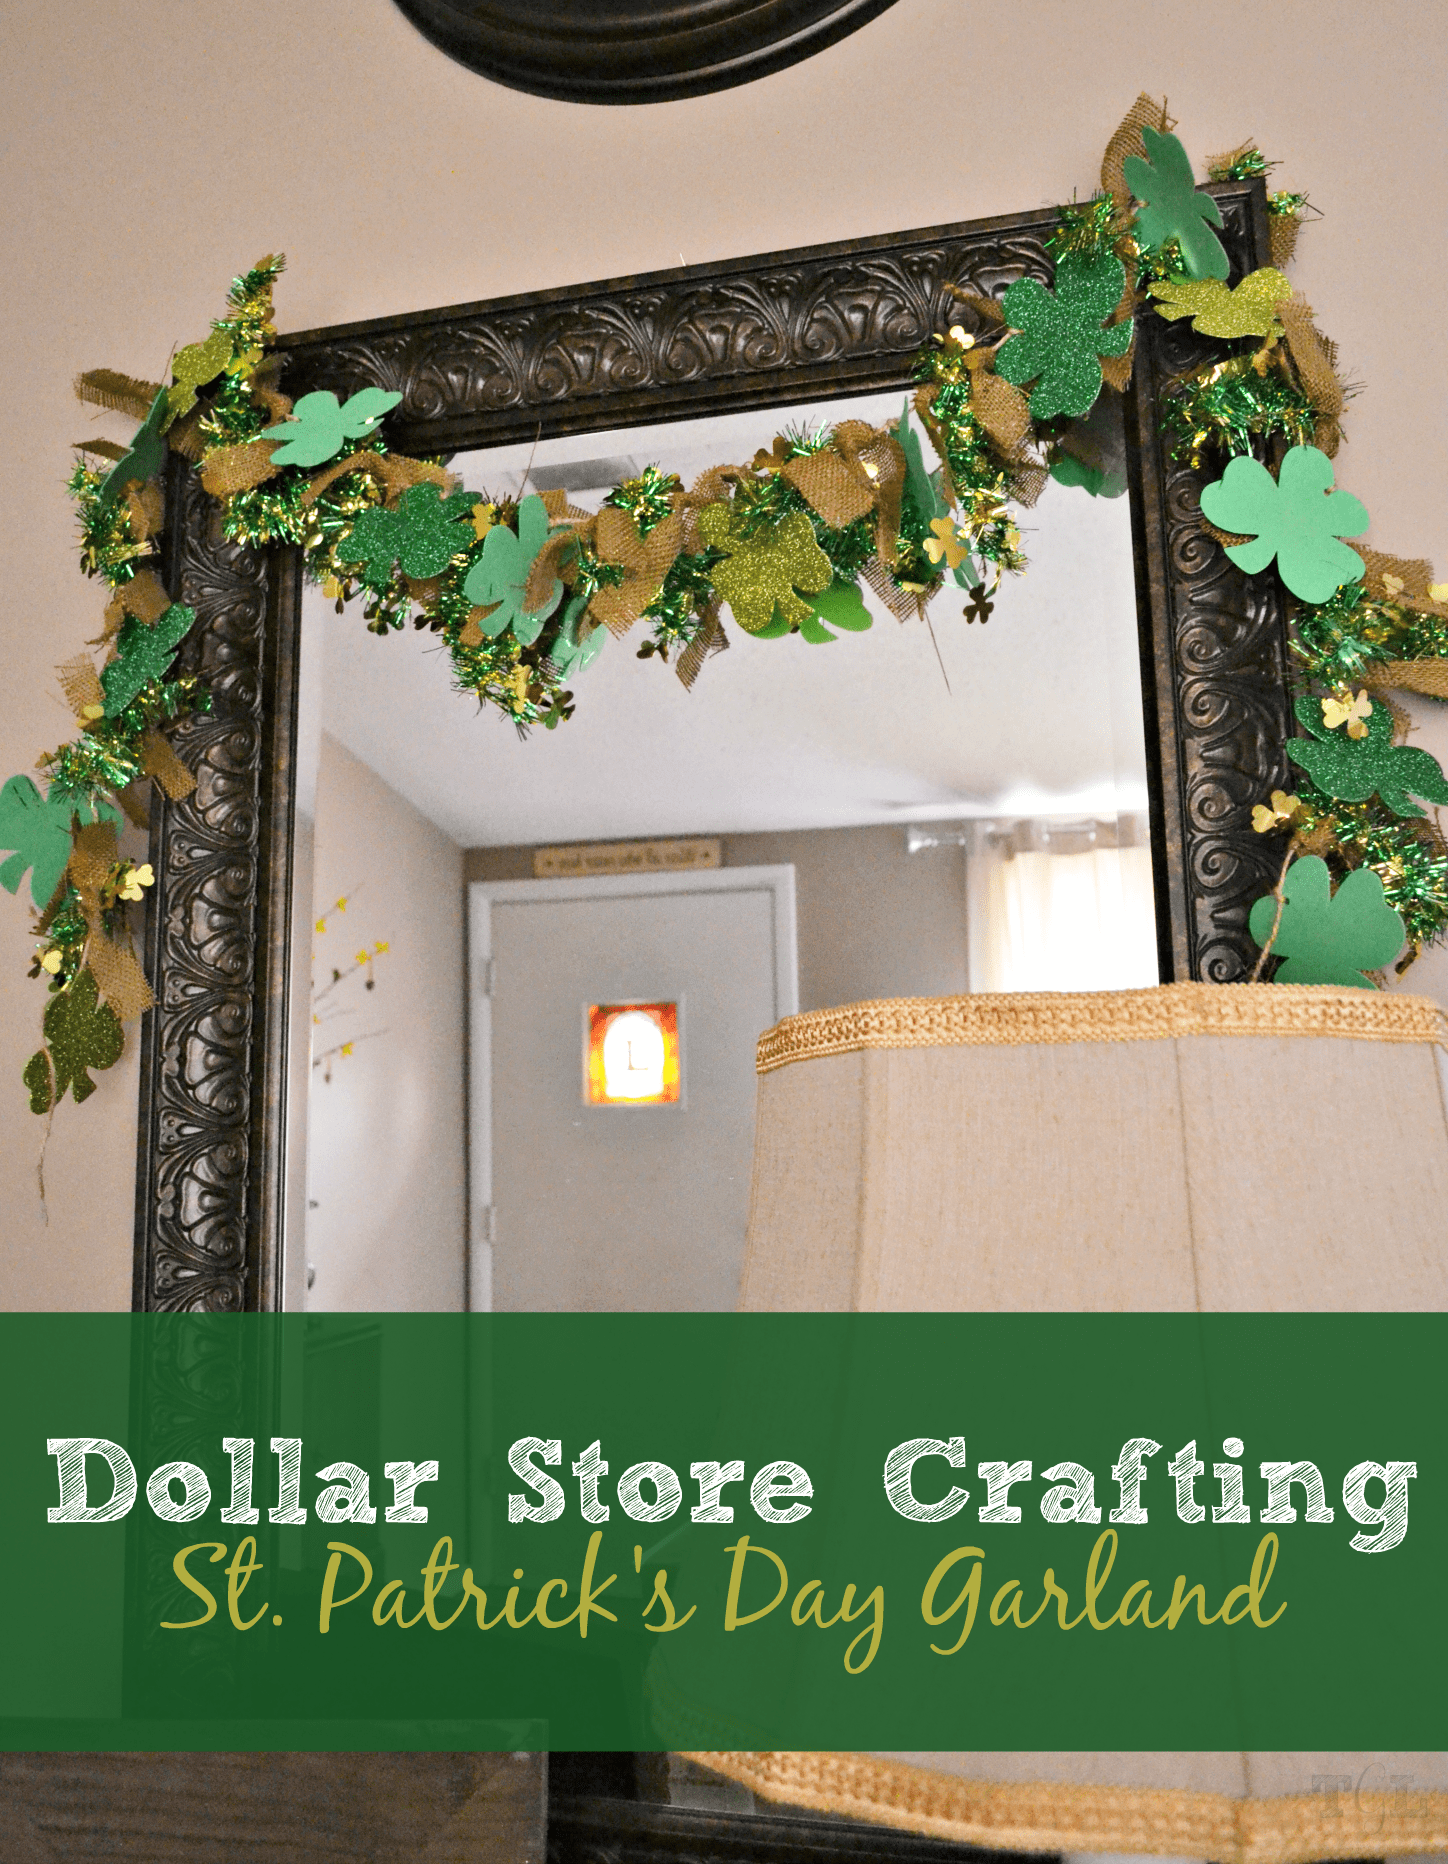 Dollar Store Crafting: St. Patrick's Day Garland | This Girl's Life Blog